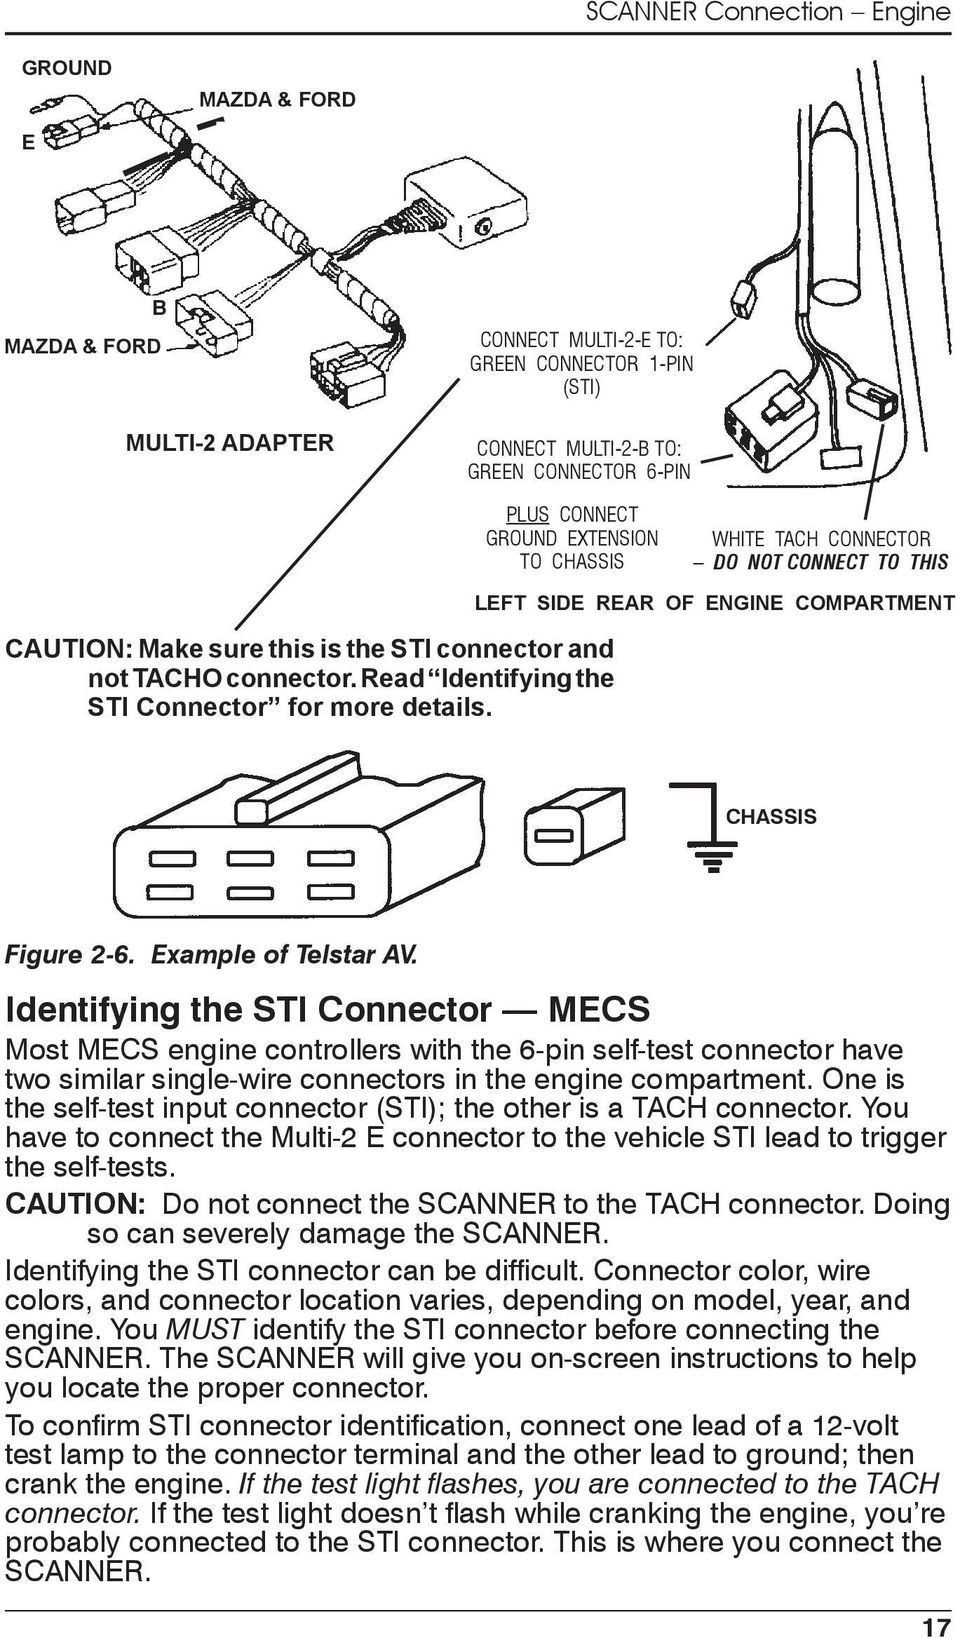 Ford Vehicle Communication Manual Pdf Xh Wiring Diagram White Tach Connector Do Not Connect To This Left Side Rear Of Engine Compartment Chassis Figure